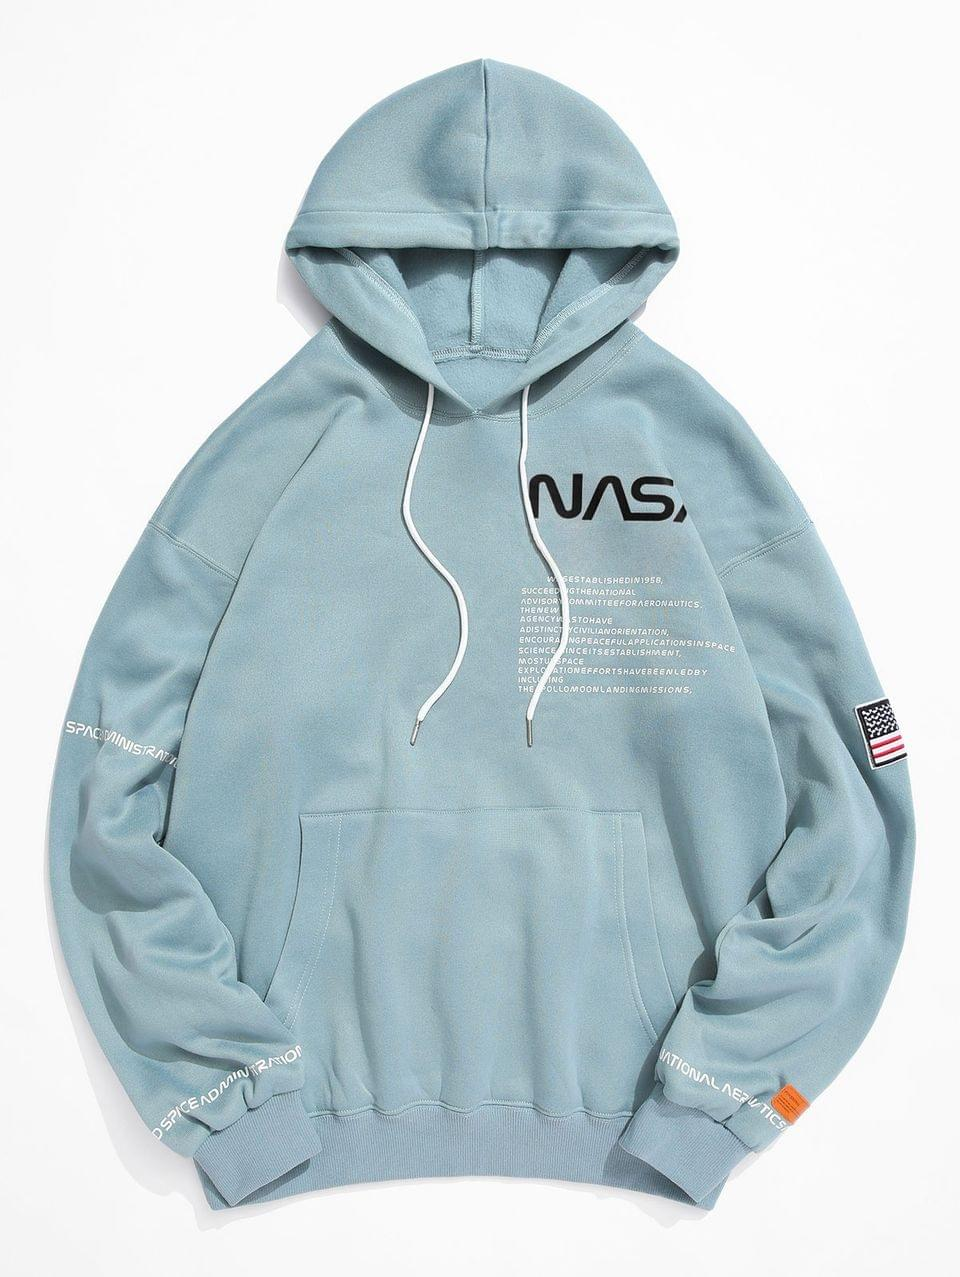 Men's American Flag Patched Drawstring Pocket Hoodie - Macaw Blue Green Xl